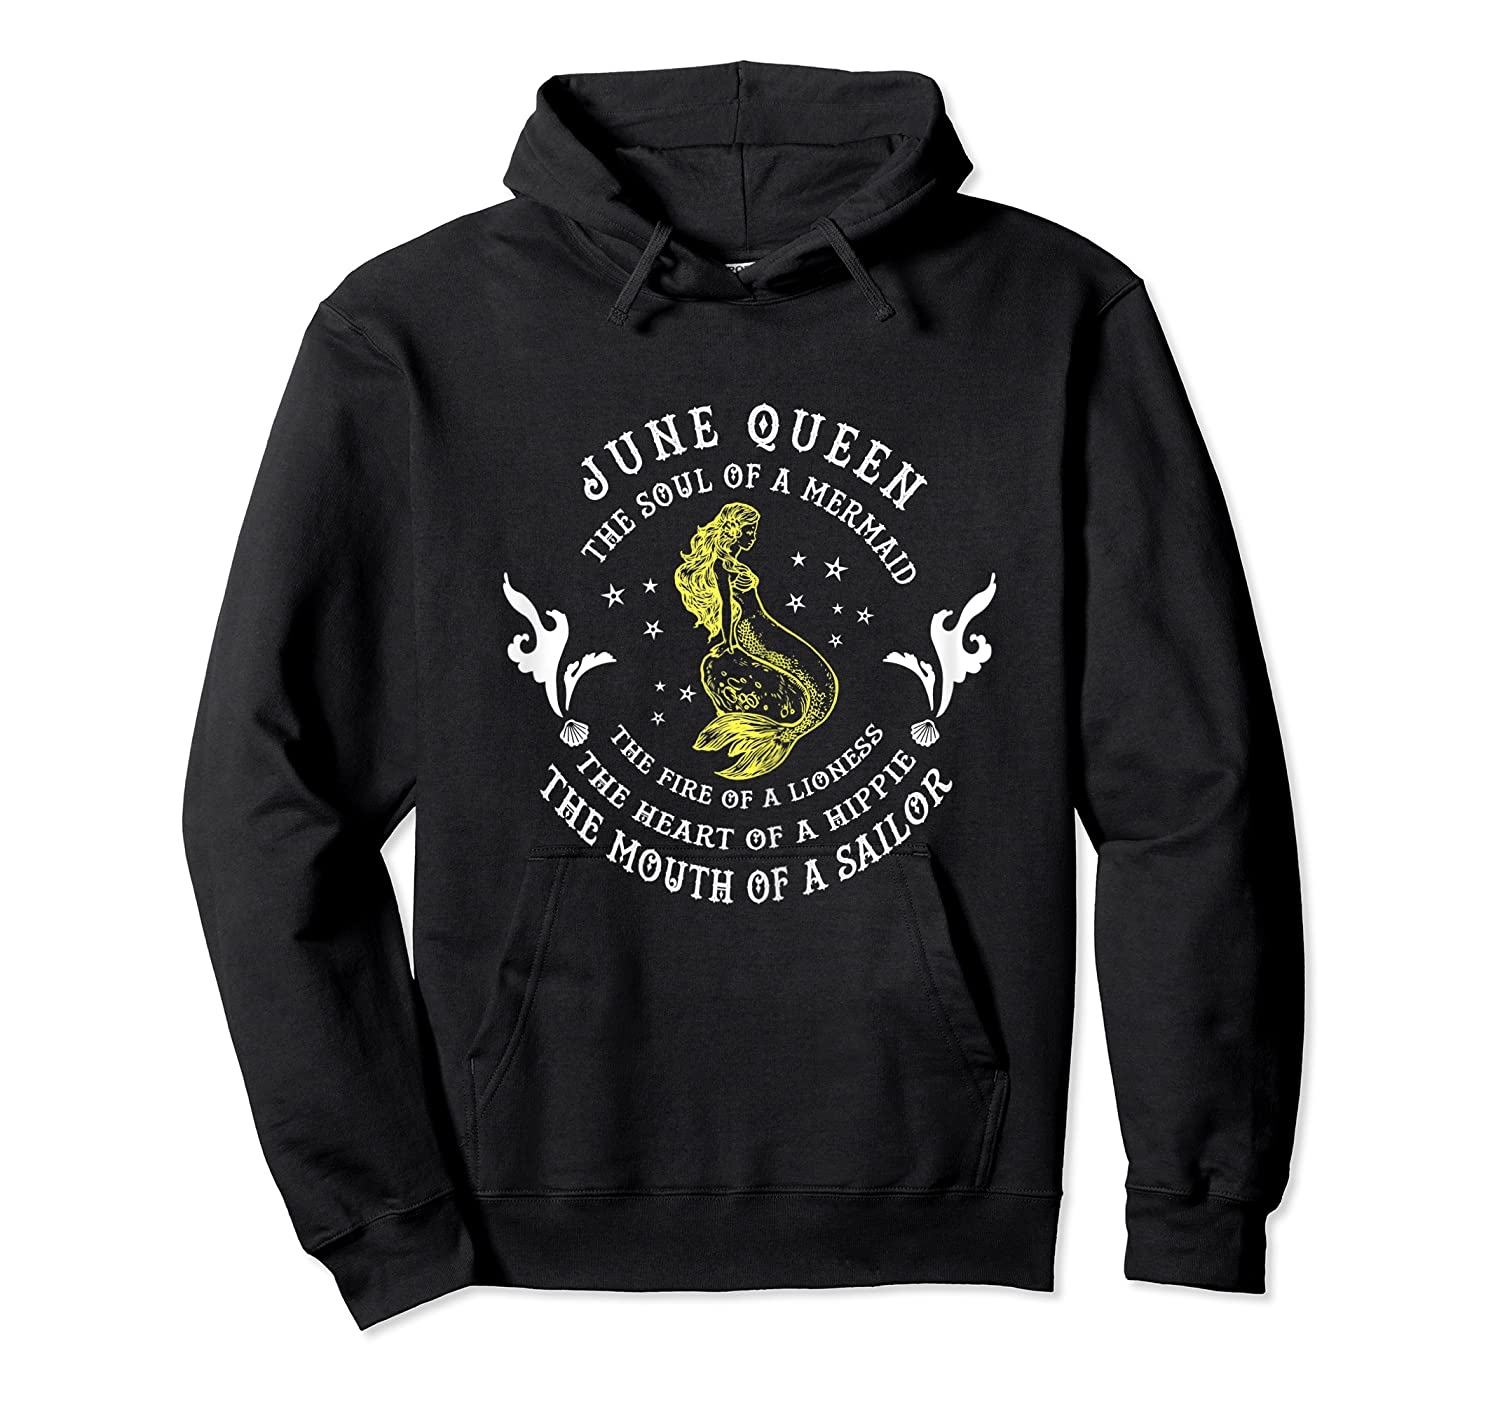 June Queen The Soul Of A Mermaid Funny Gift Mother S Day Shirts Unisex Pullover Hoodie